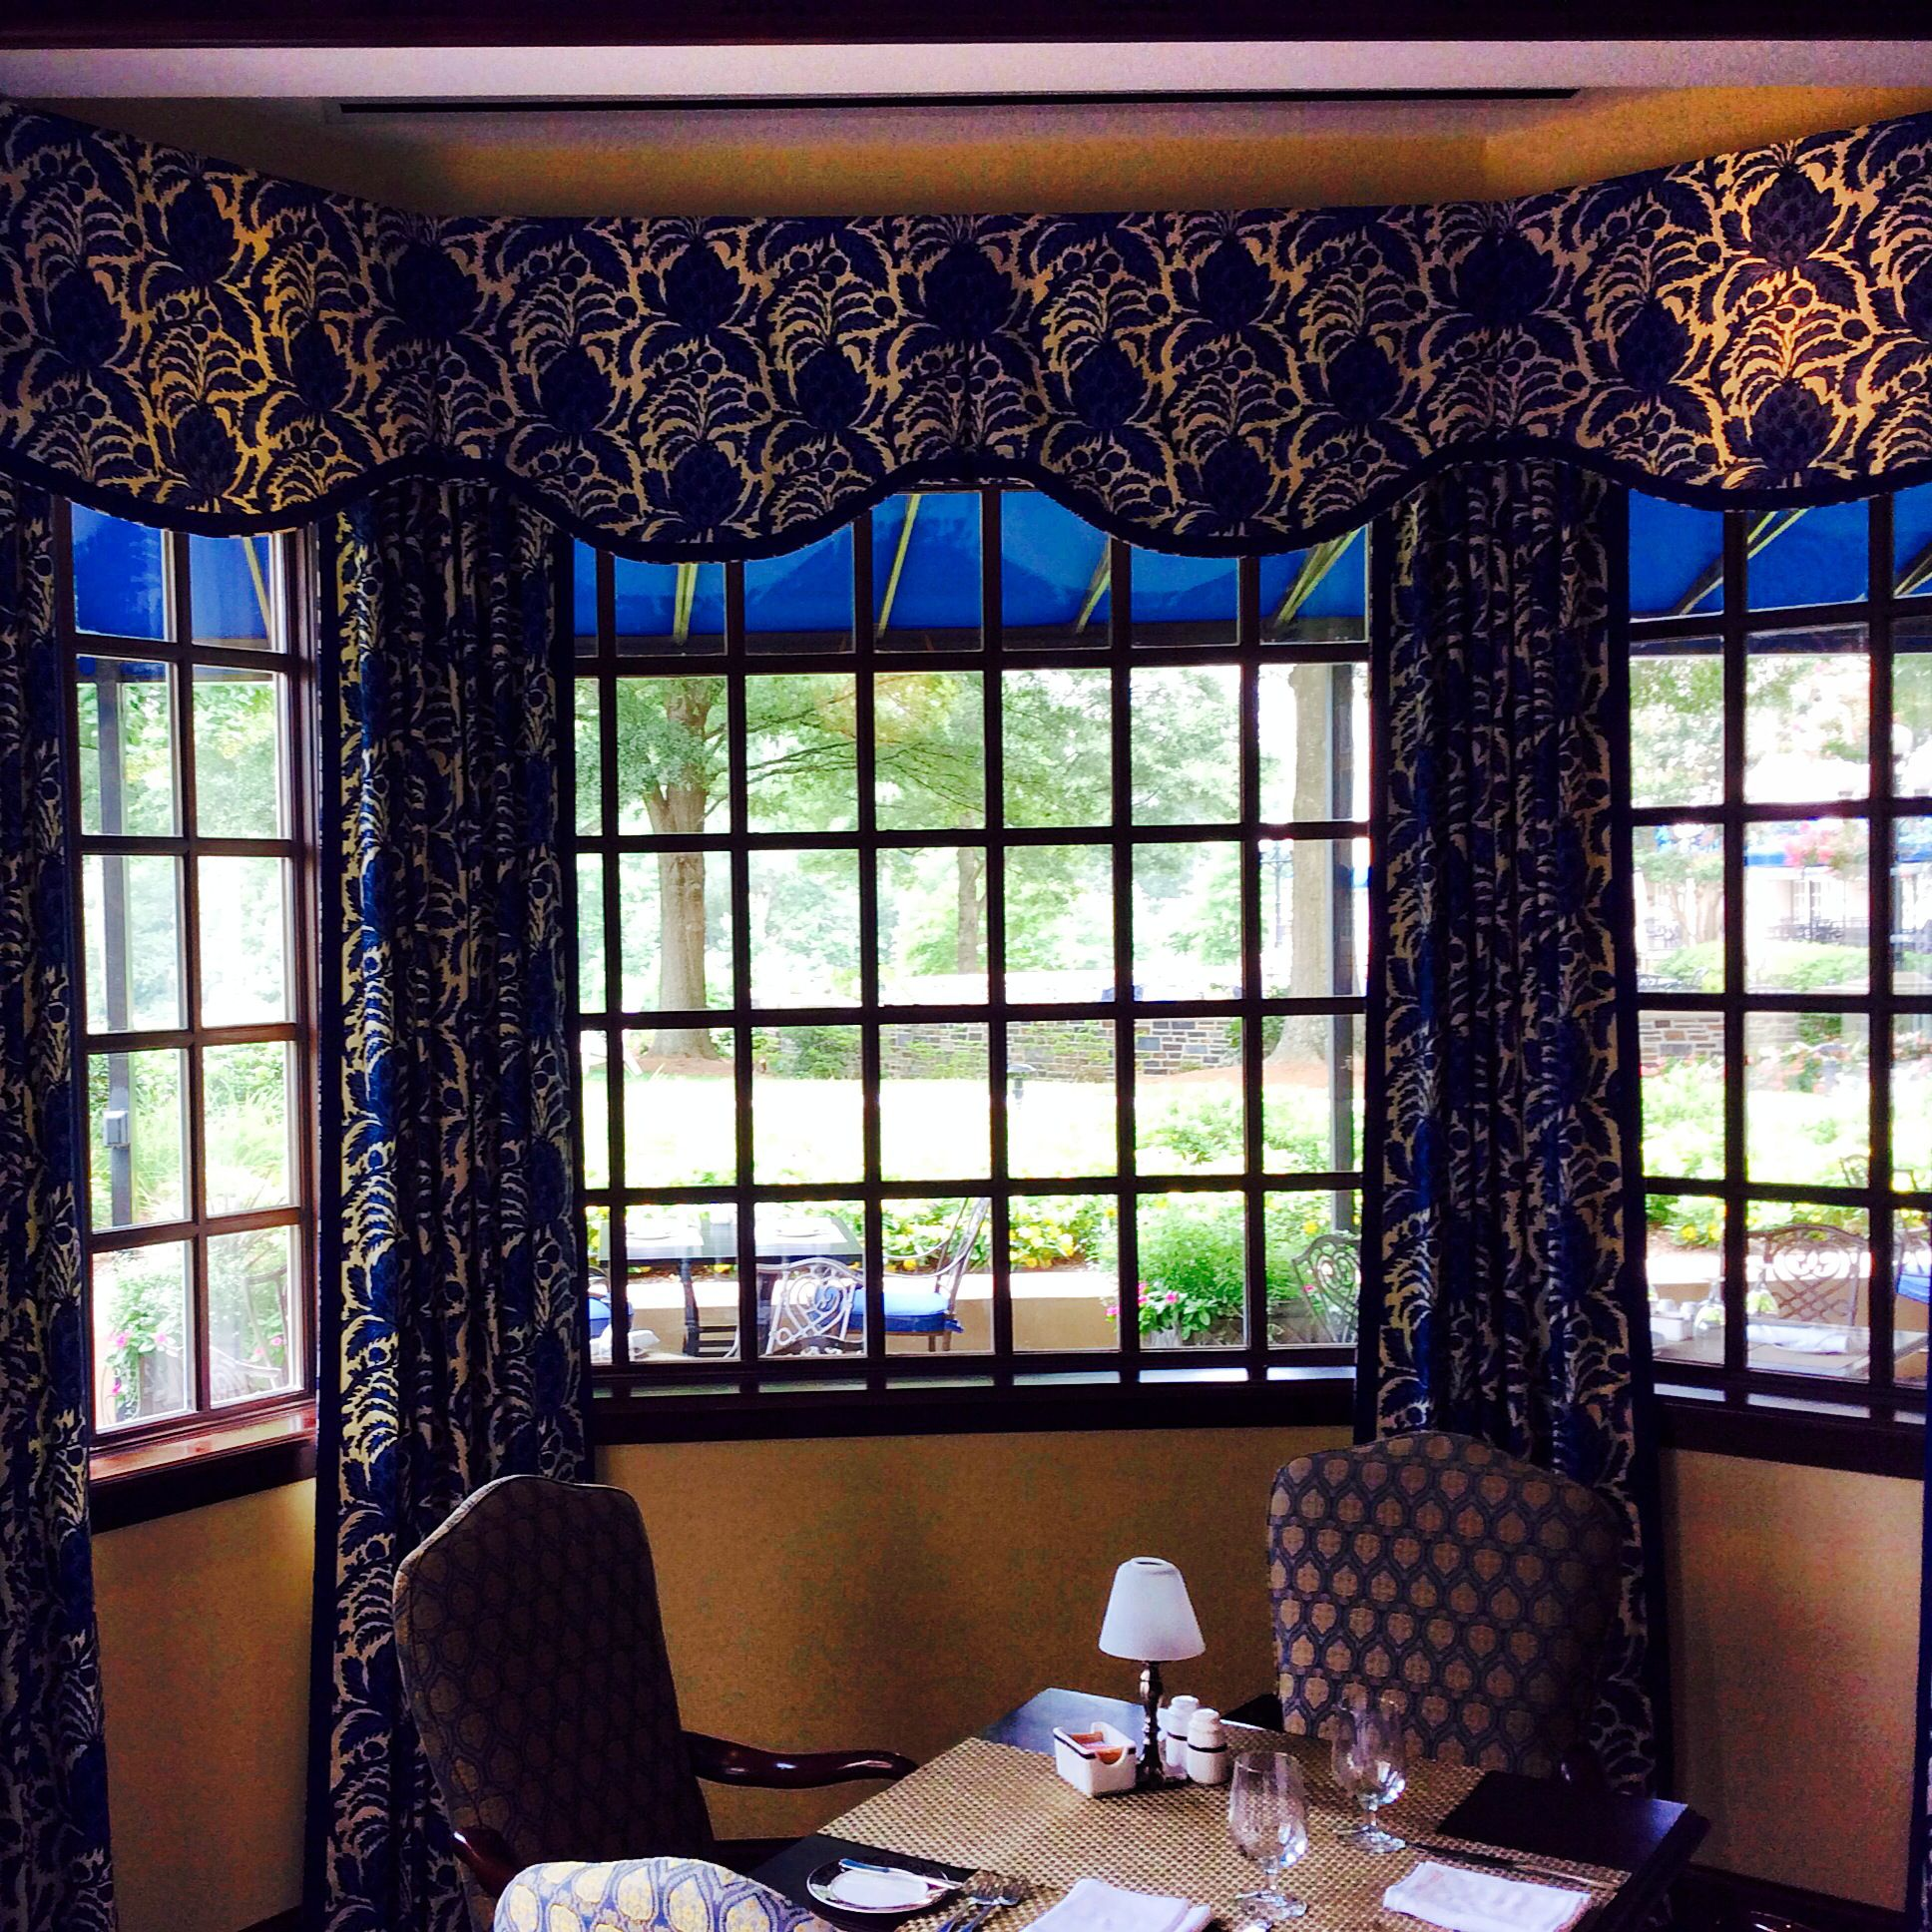 Fairview Dining Room The Beautiful New Duke Blue Window Treatments In The Fairview